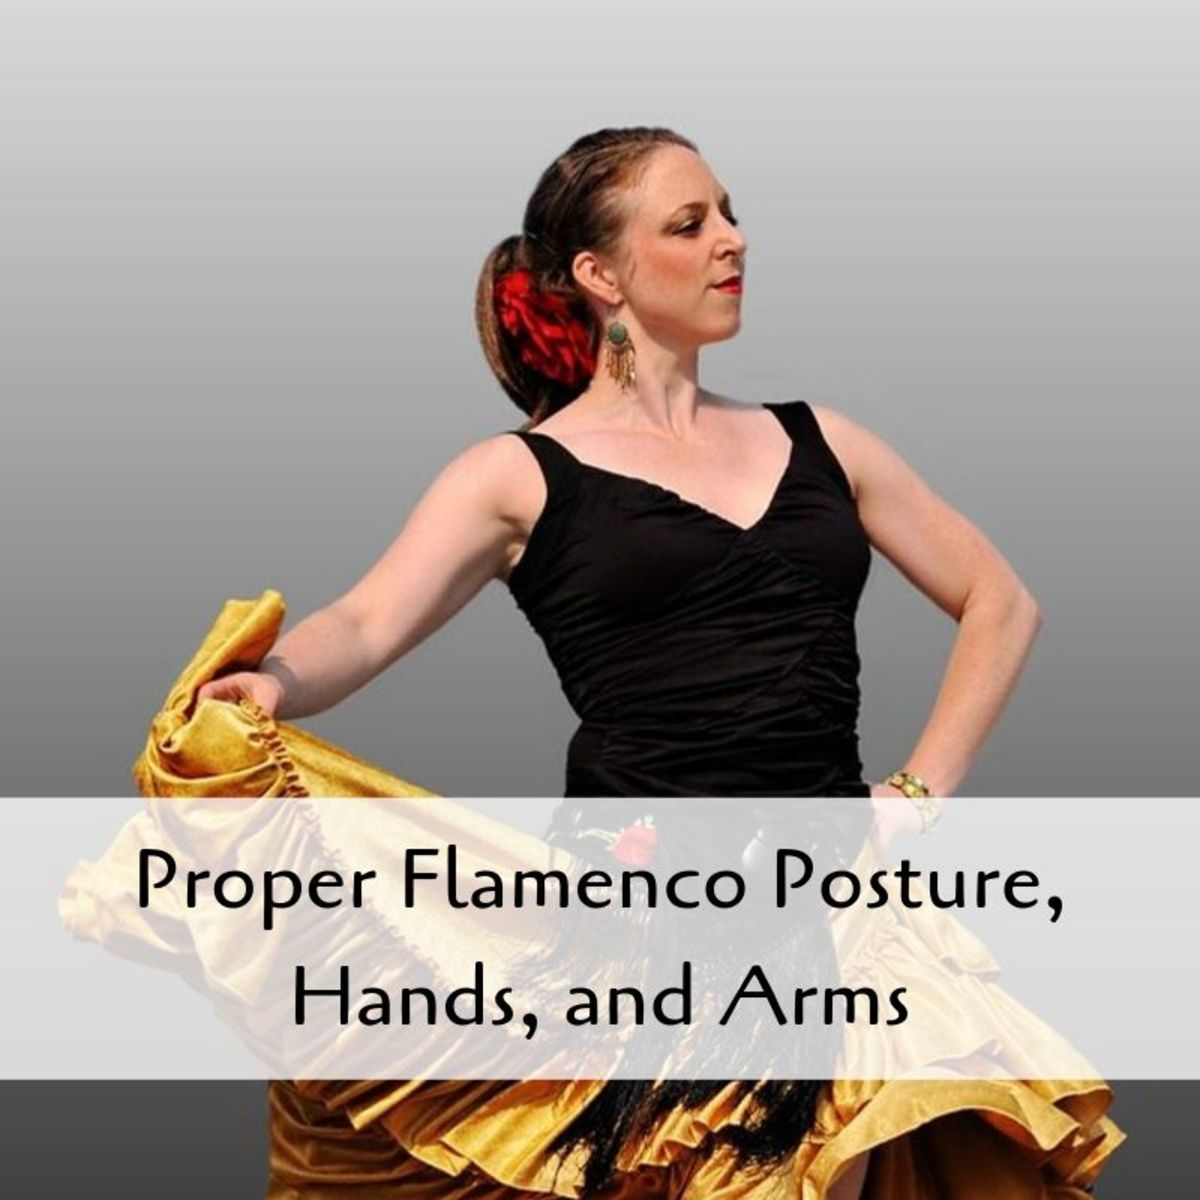 Flamenco is all about the posture.